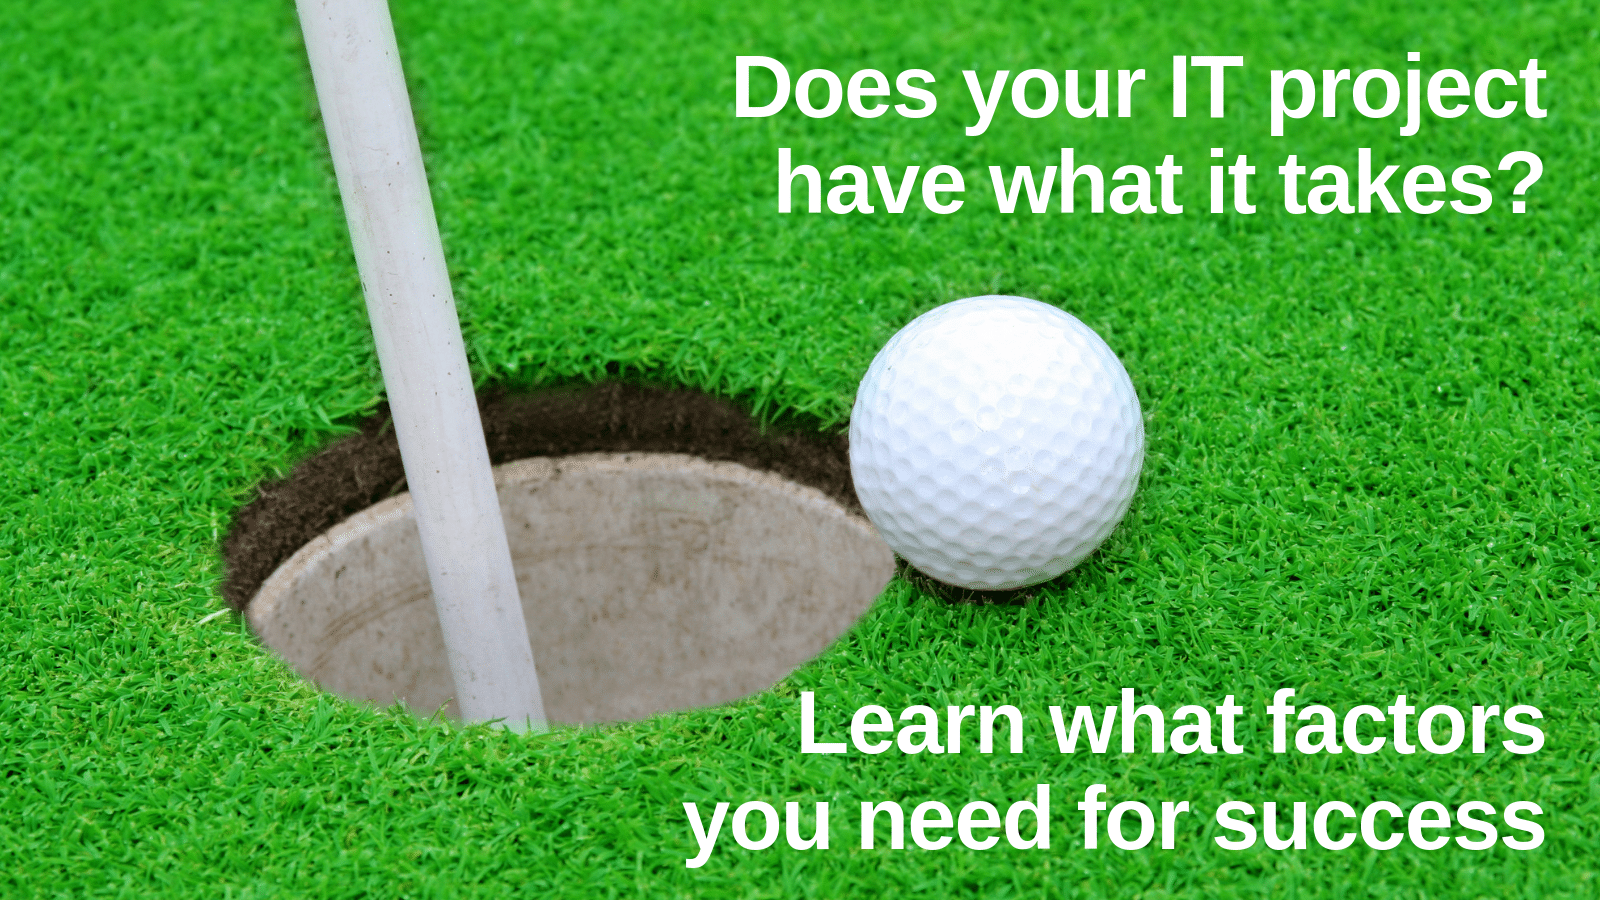 Does your IT project have what it takes? Learn what factors you need for success